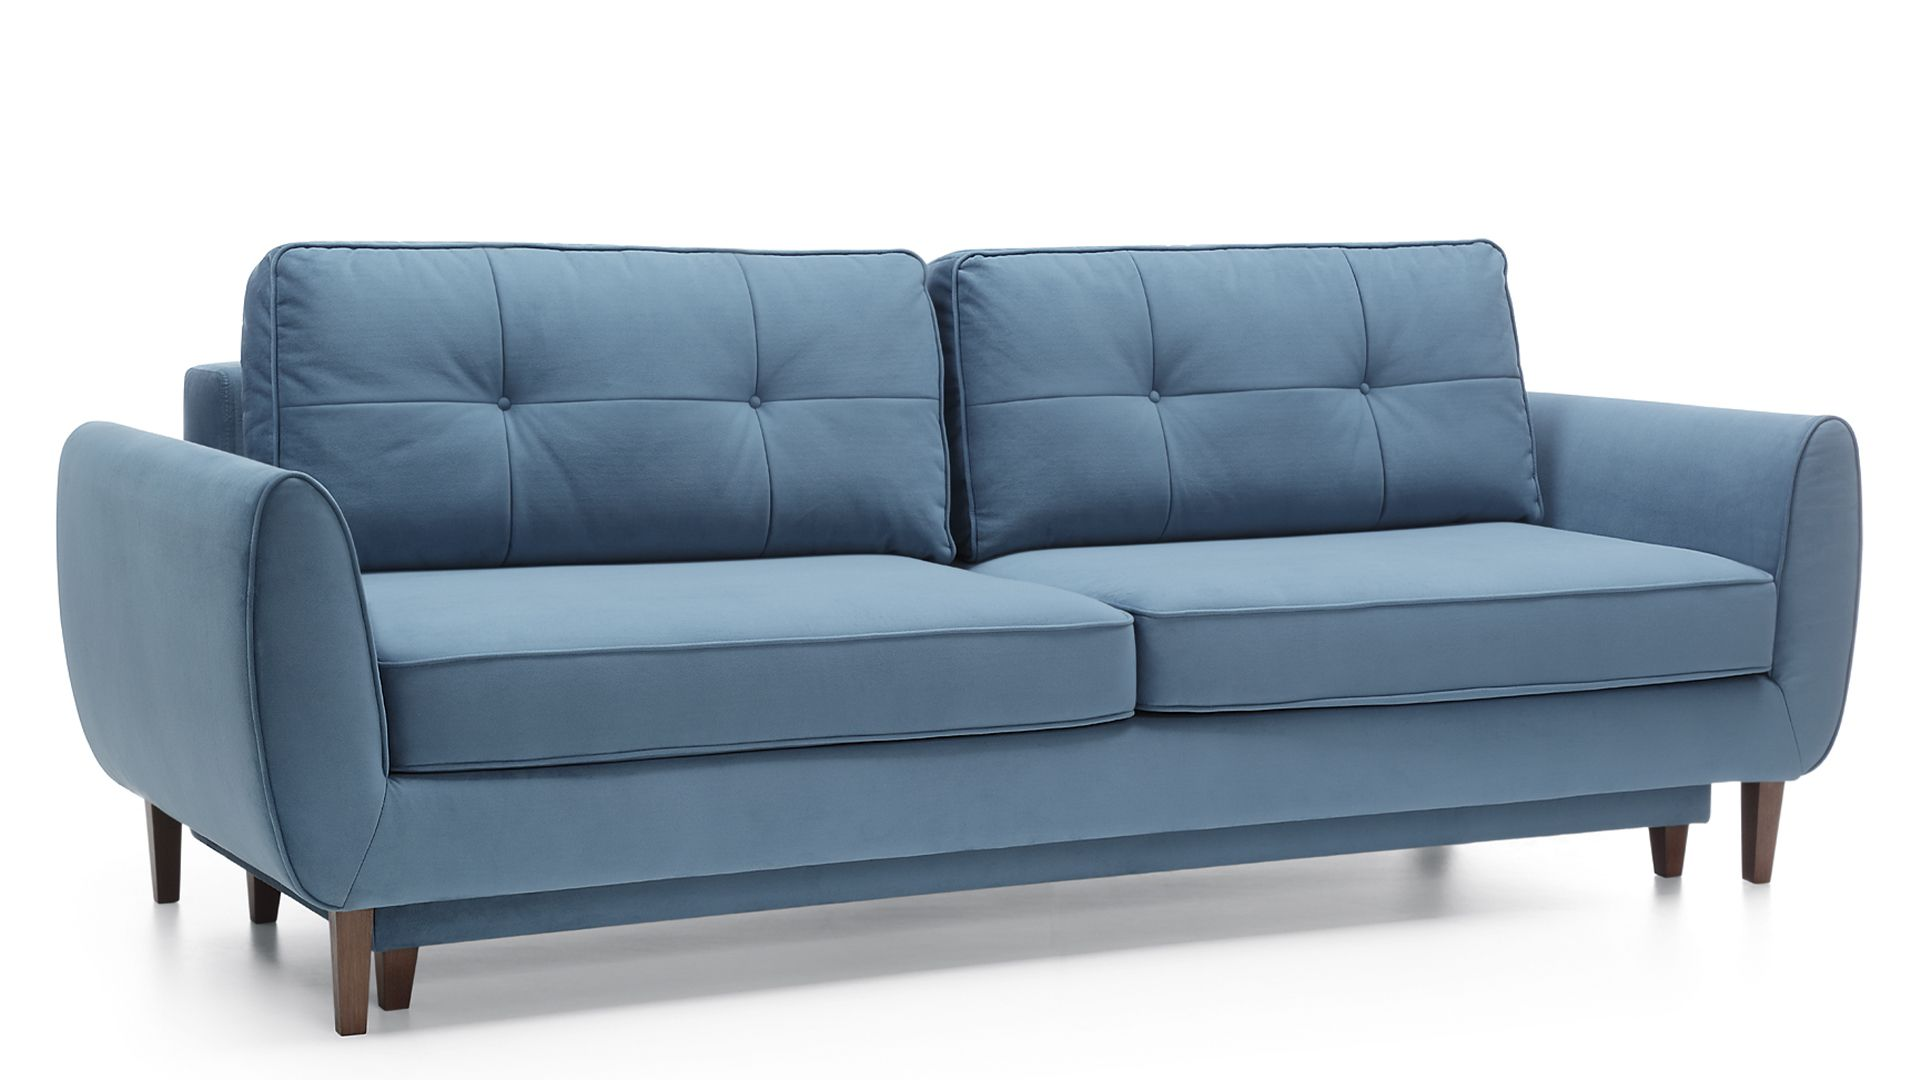 Sofa with sleeping function Oland